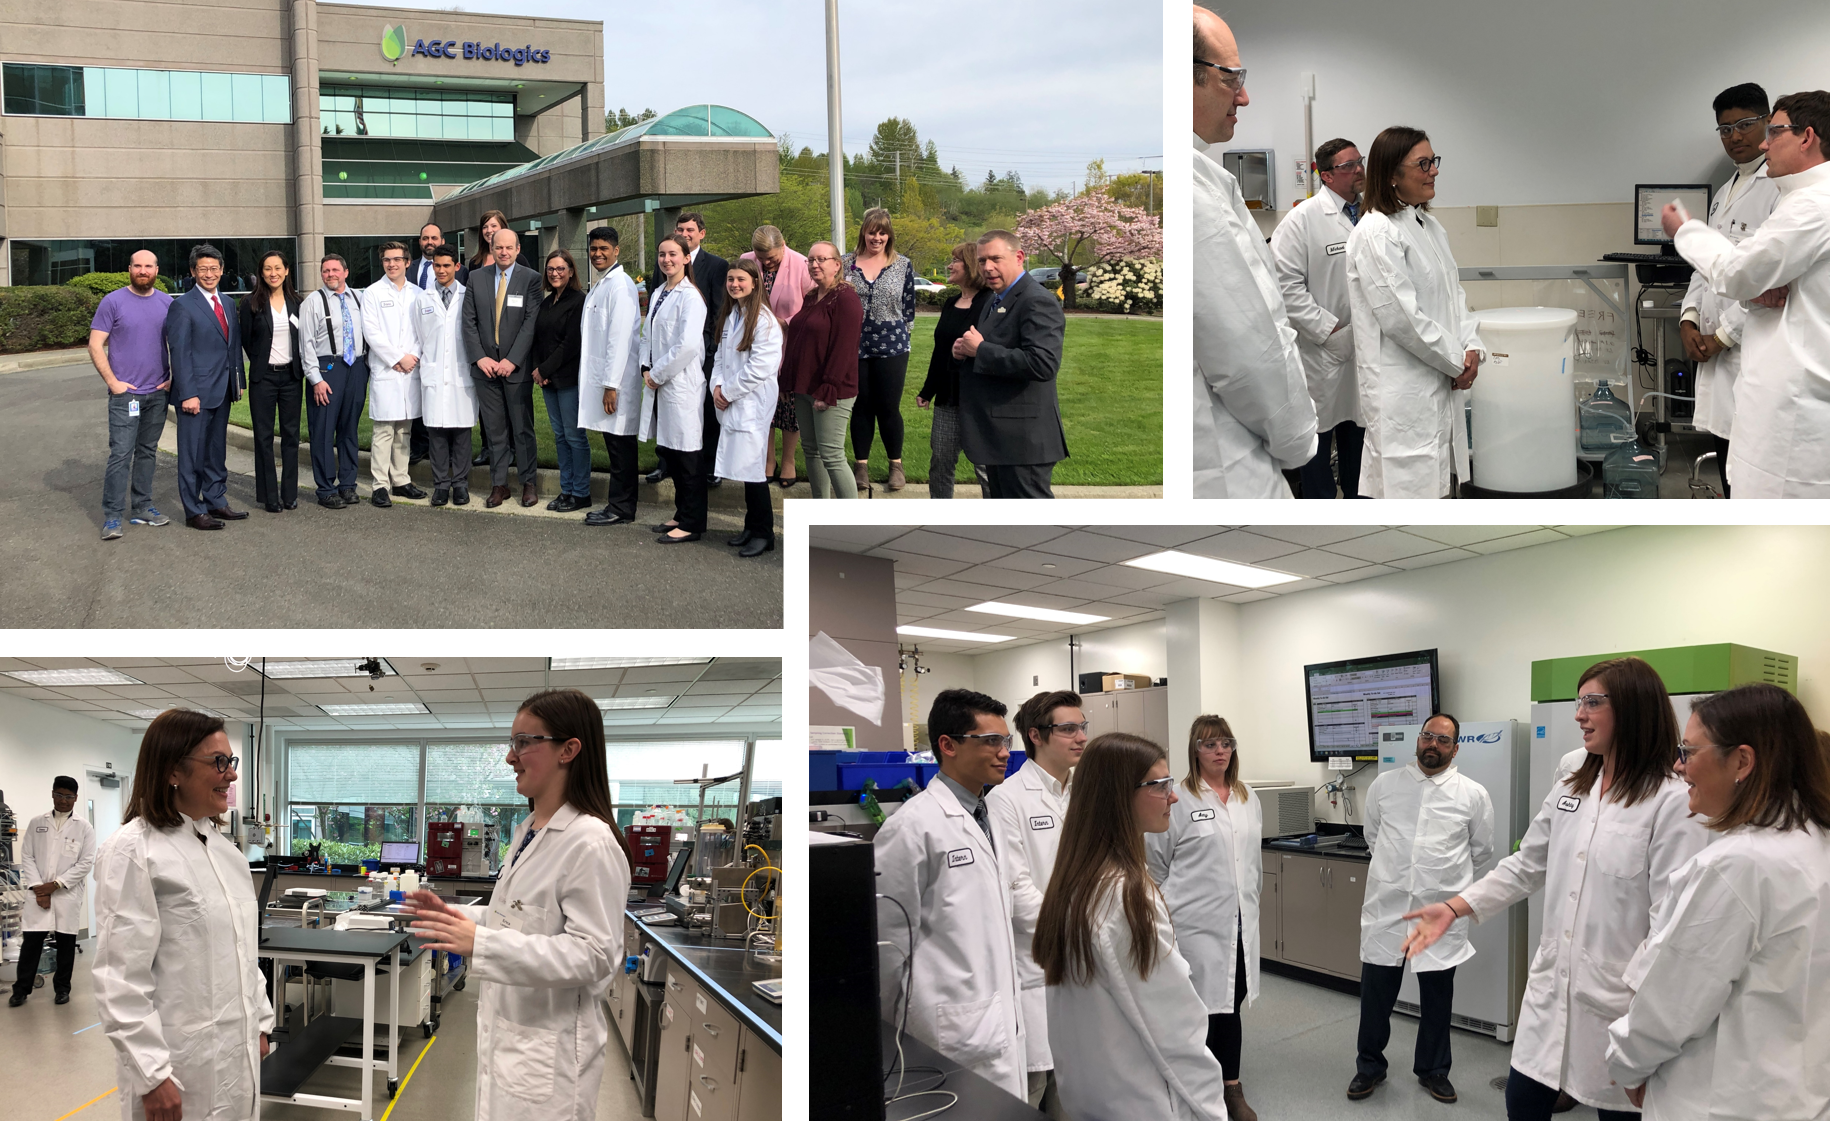 U.S. Congresswoman, Suzan DelBene, Visits AGC Biologics Corporate Headquarters